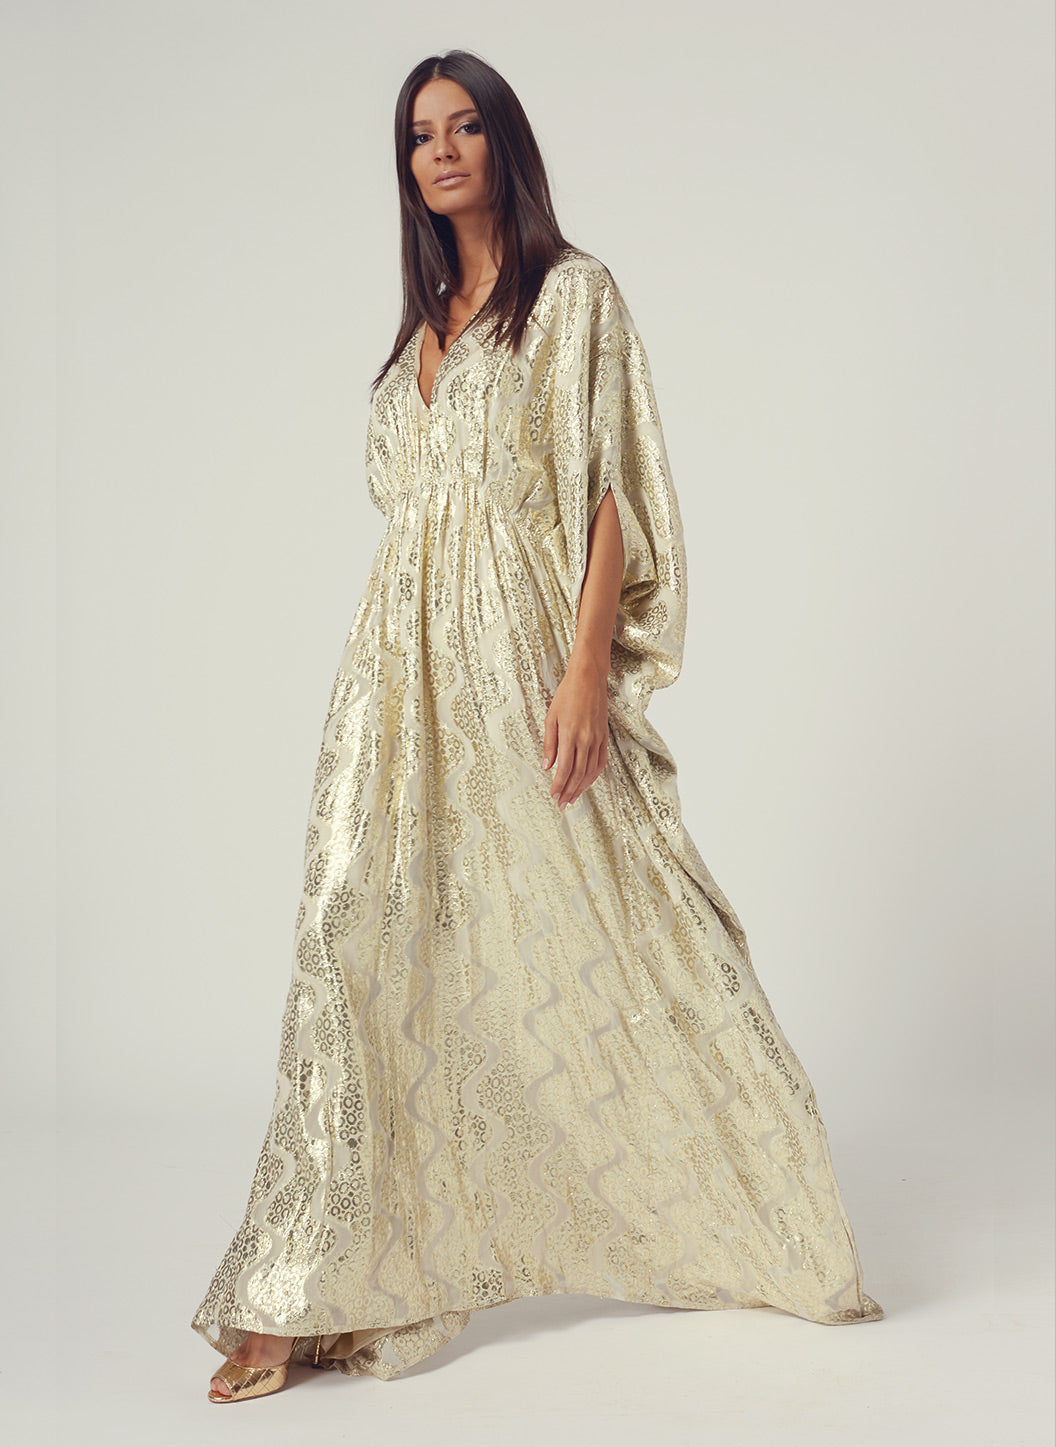 Look 5 Empire Line Maxi Dress Gold Shimmer